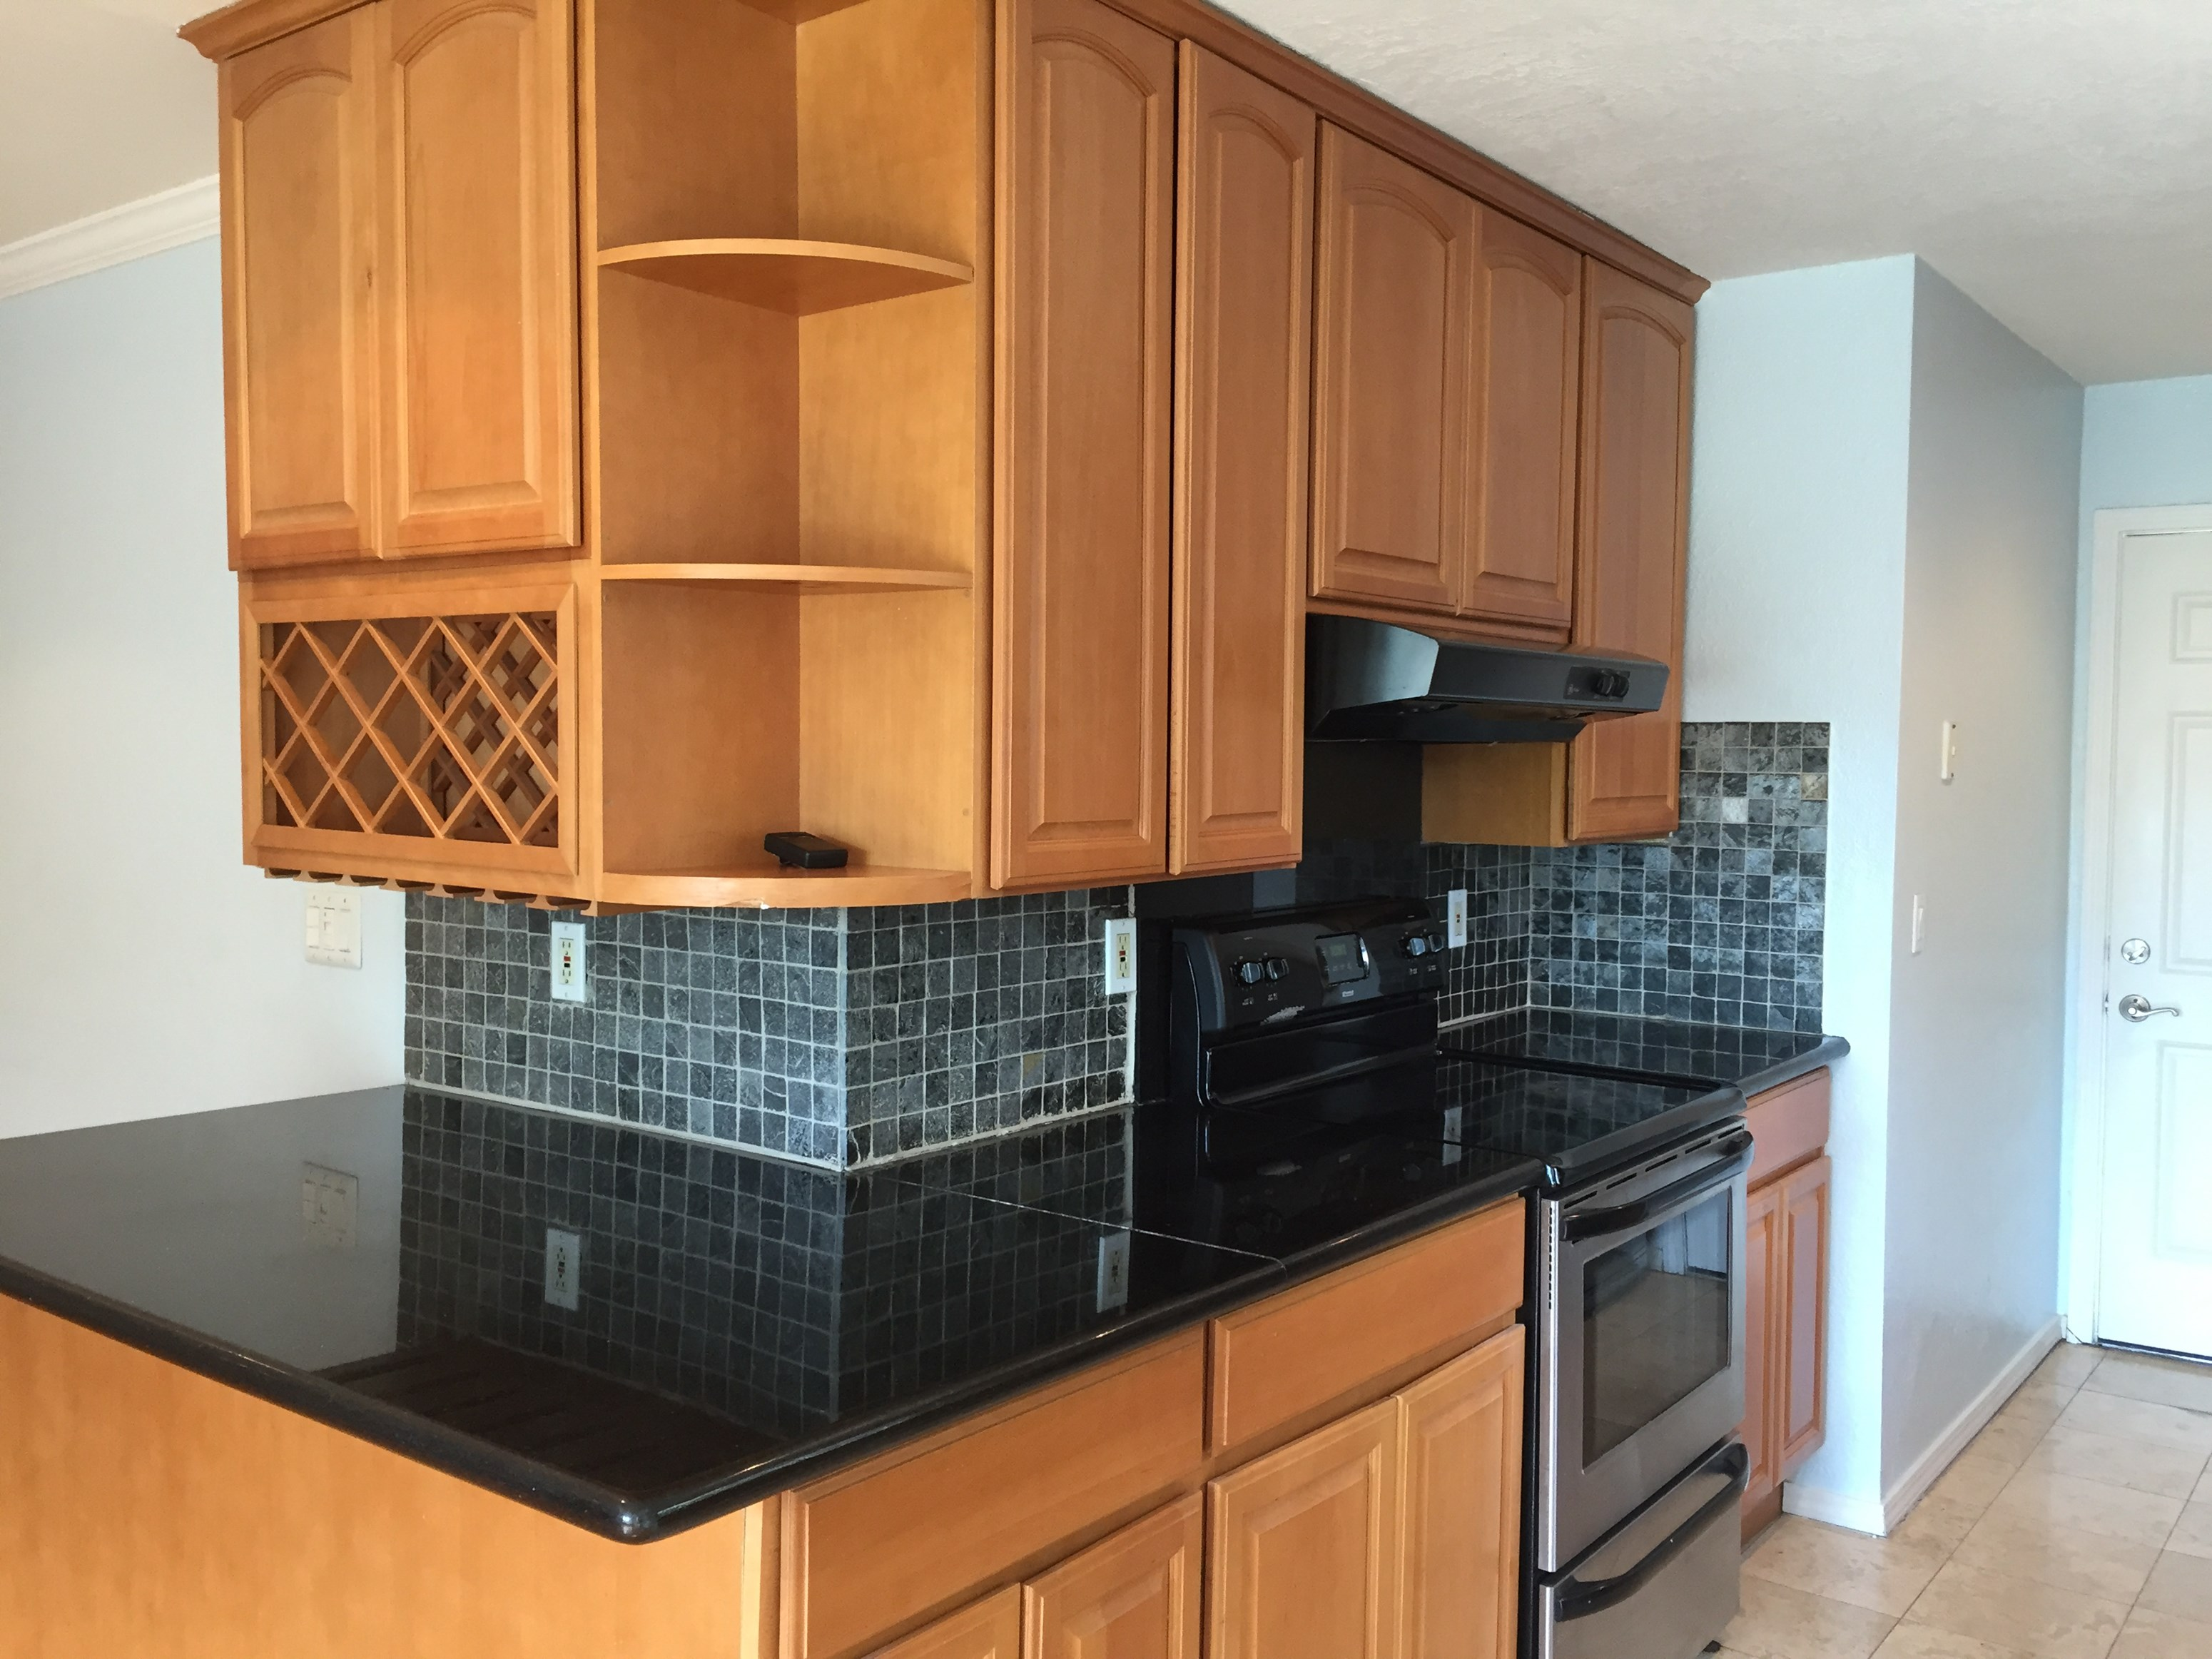 rooms for rent in bay area – apartments flats mercial space